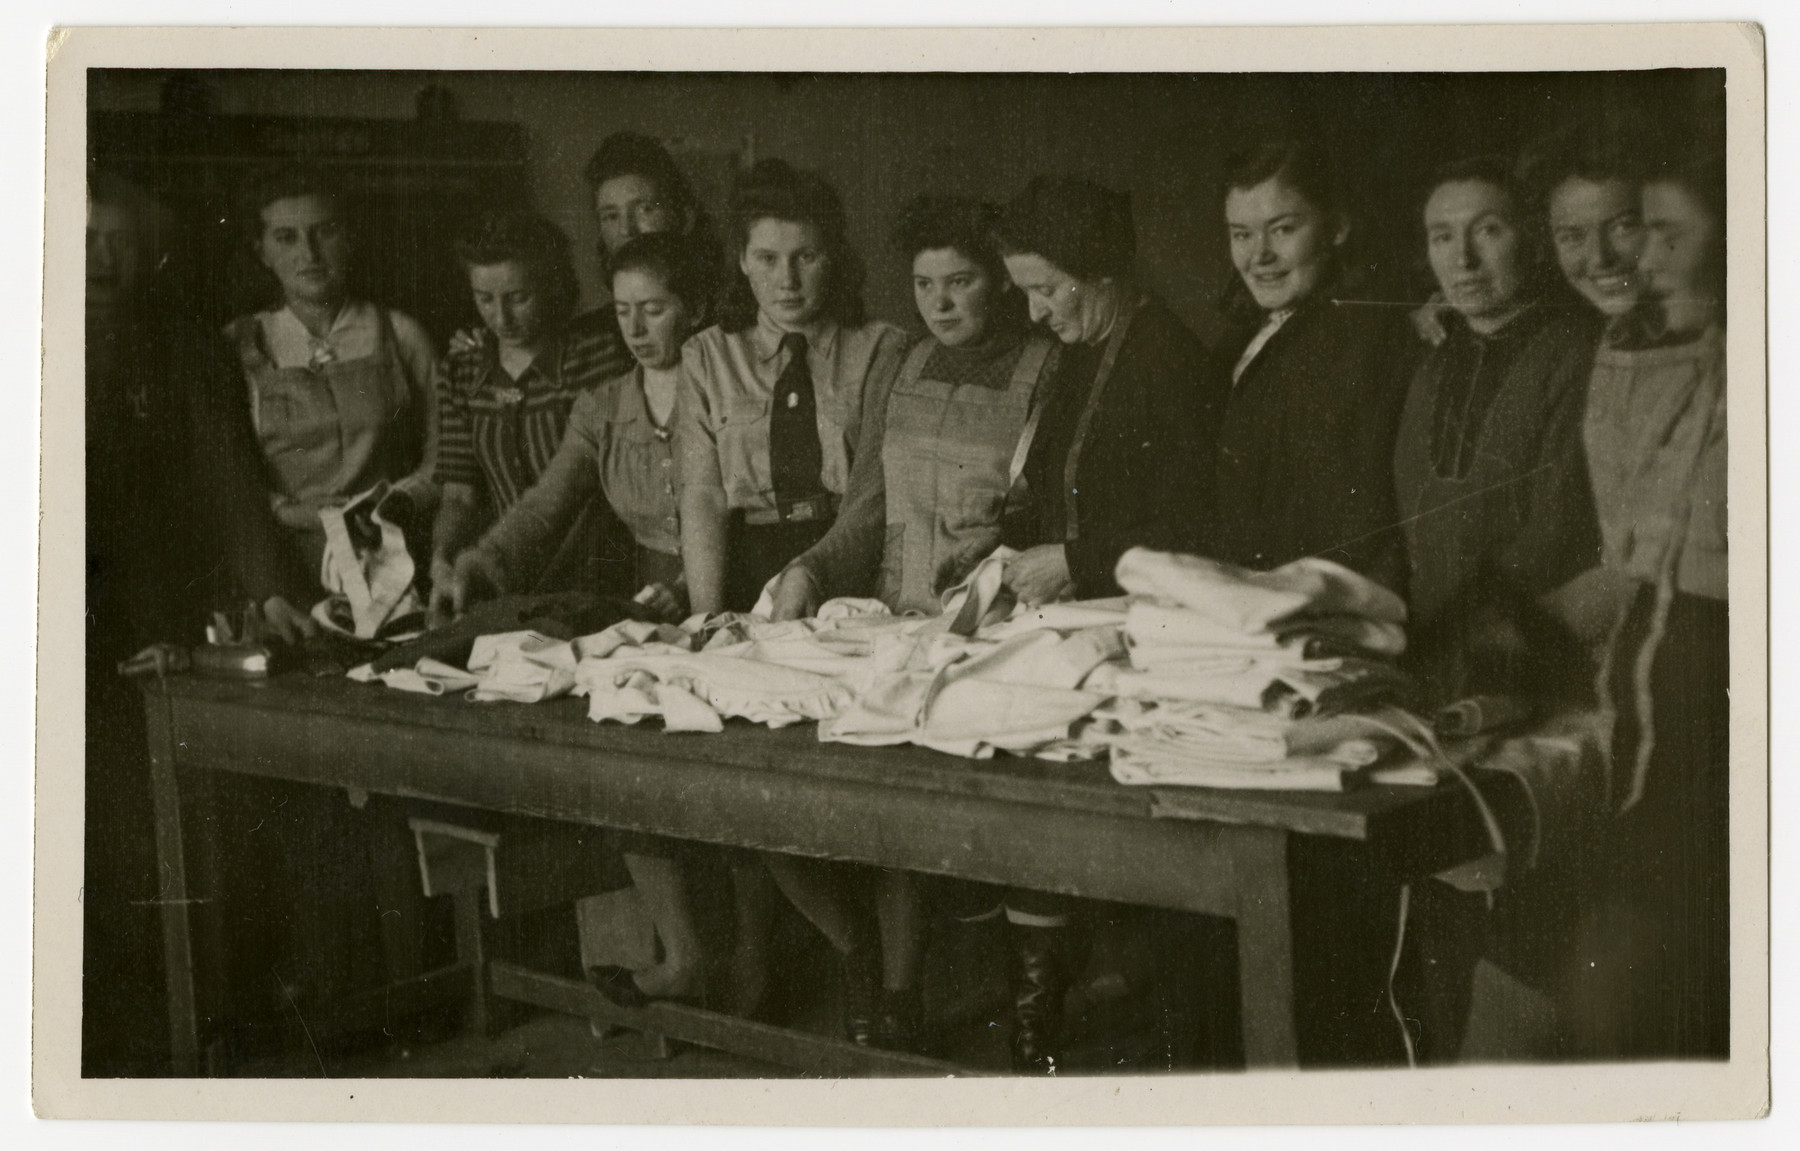 Women sort linens in the Bamberg displaced persons camp.